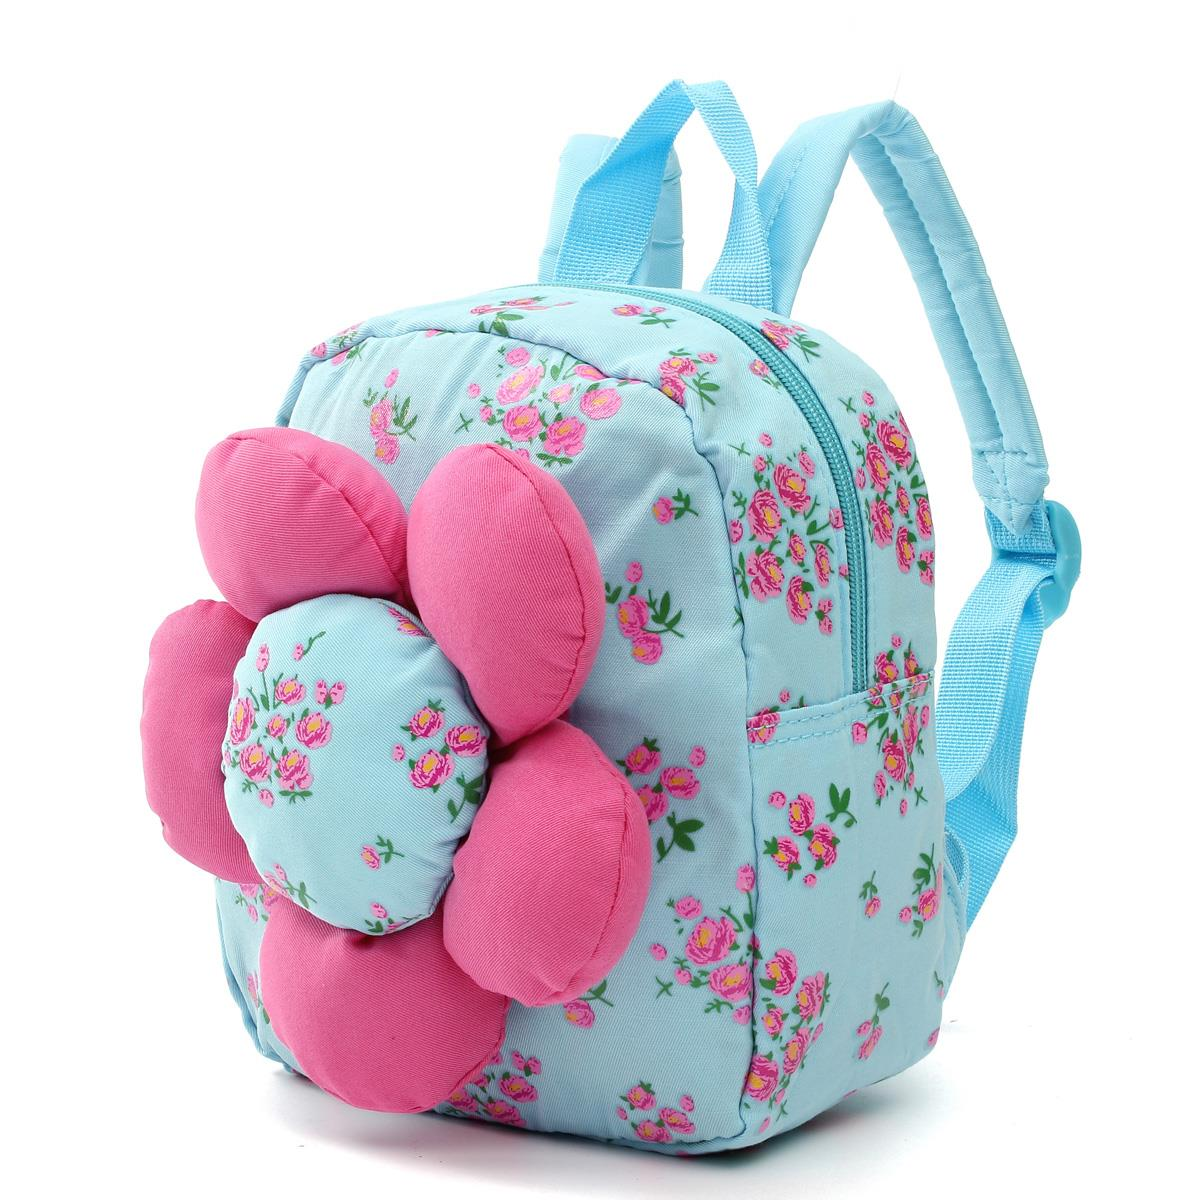 Big Backpacks For Girls - Crazy Backpacks